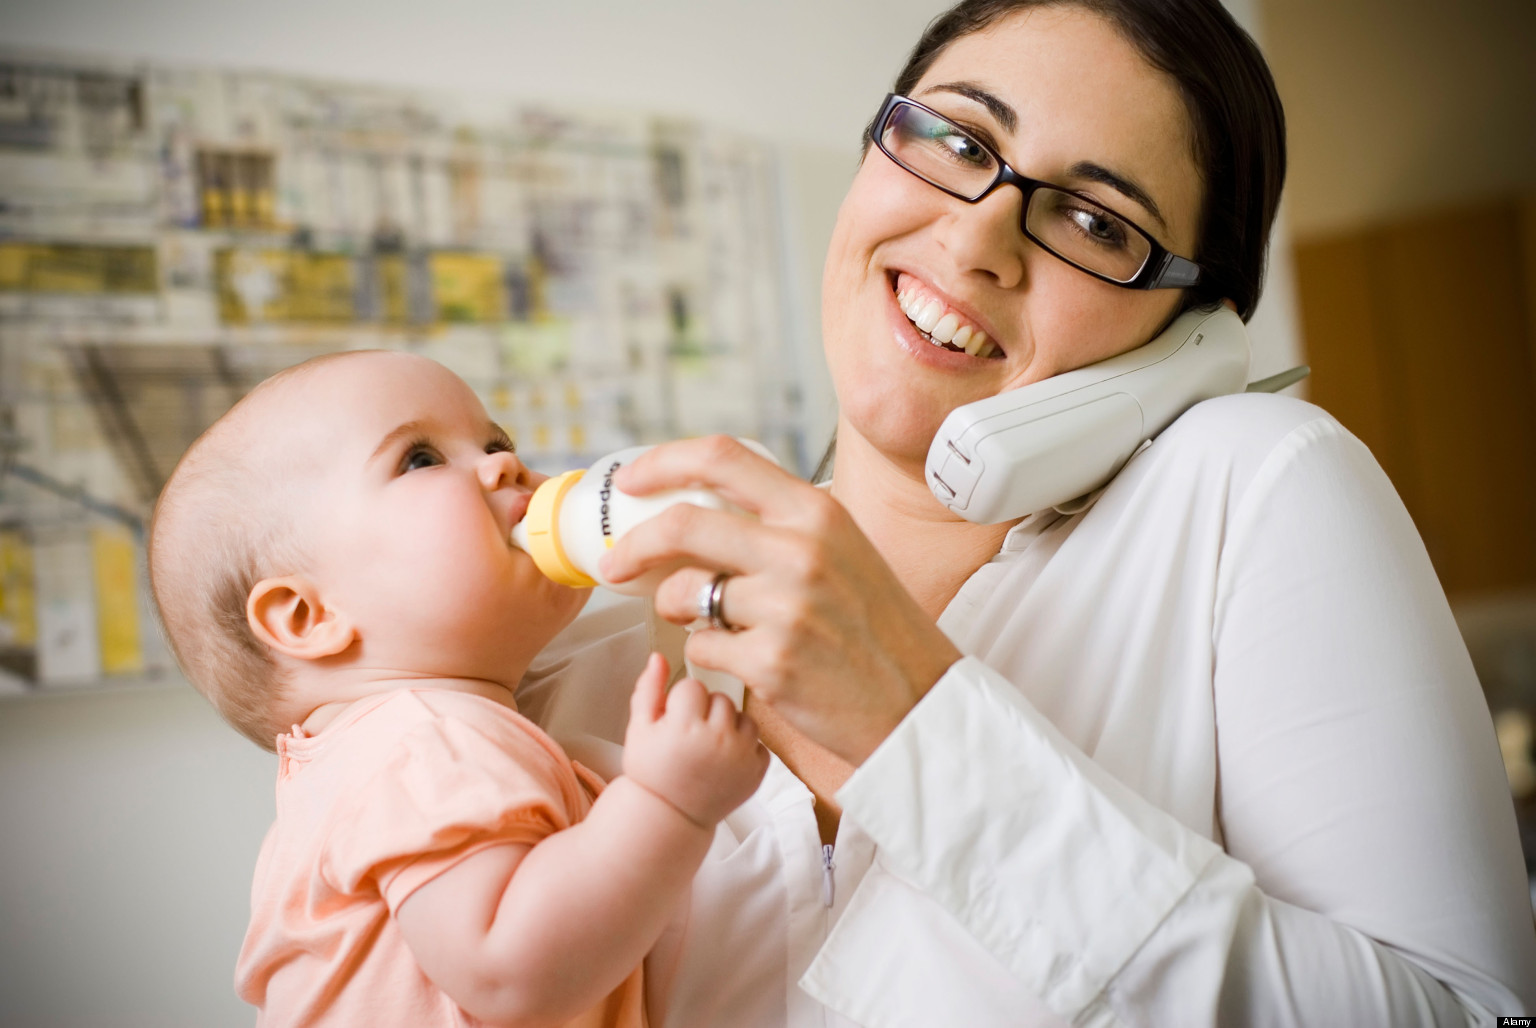 Small home business ideas for stay at home moms